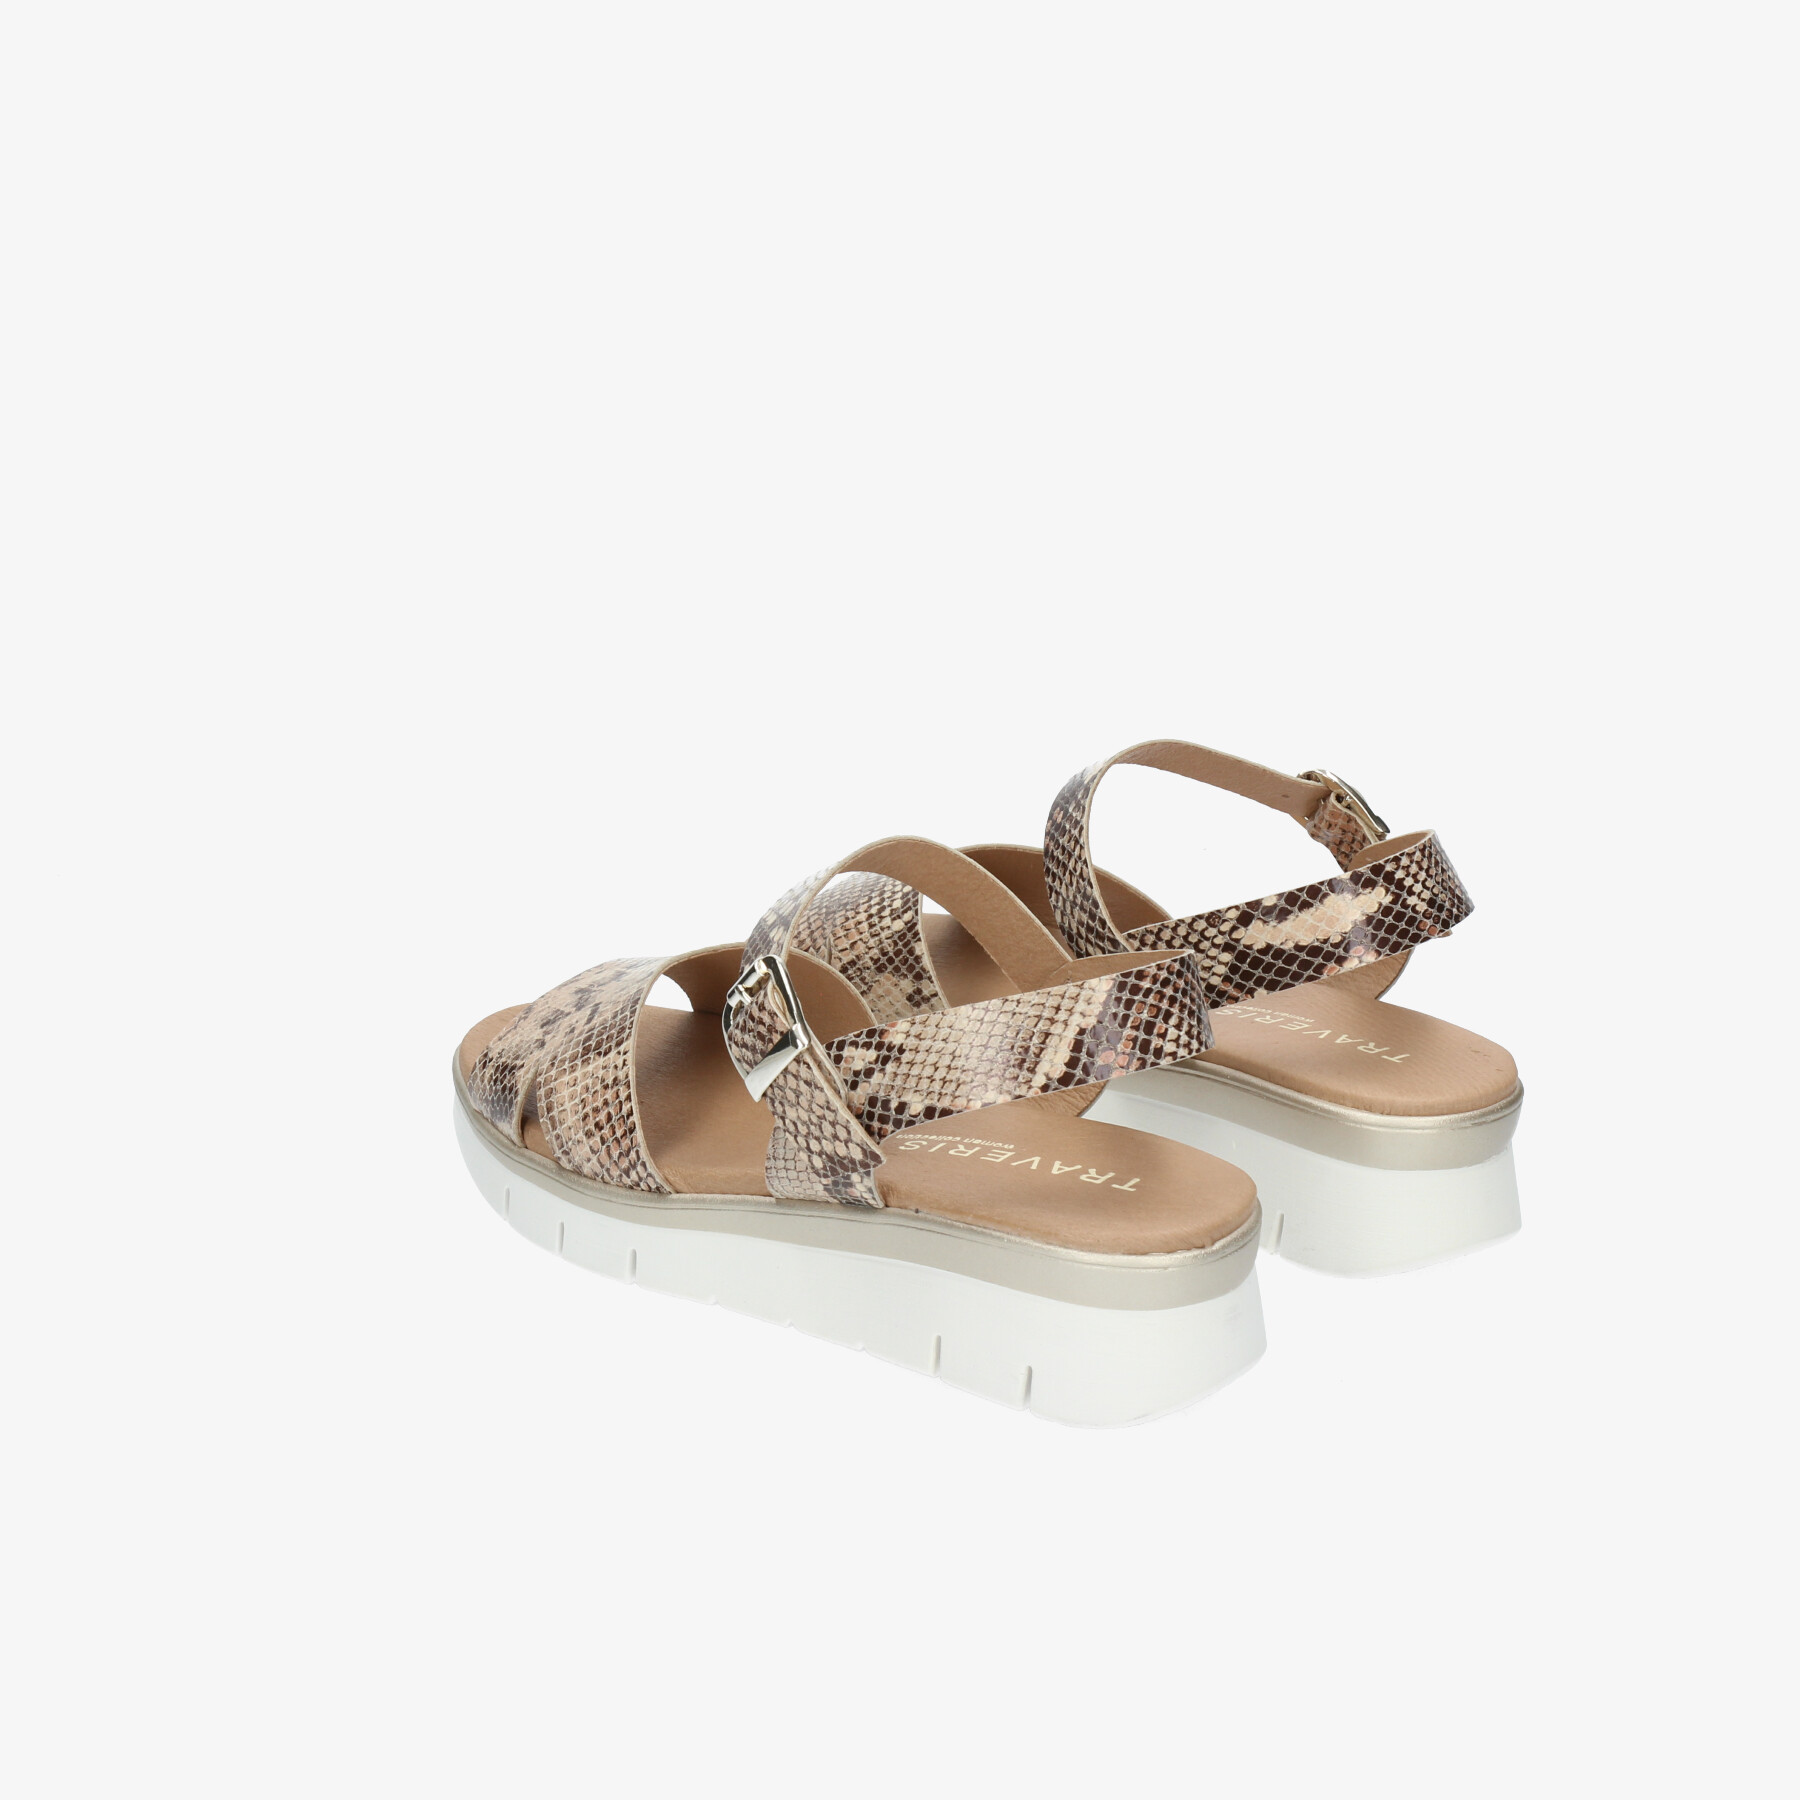 Sandalias Traveris Planas Planas Planas Sandalias shoes Traveris shoes 92401Pabloochoa 92401Pabloochoa Sandalias Y9IWEDH2